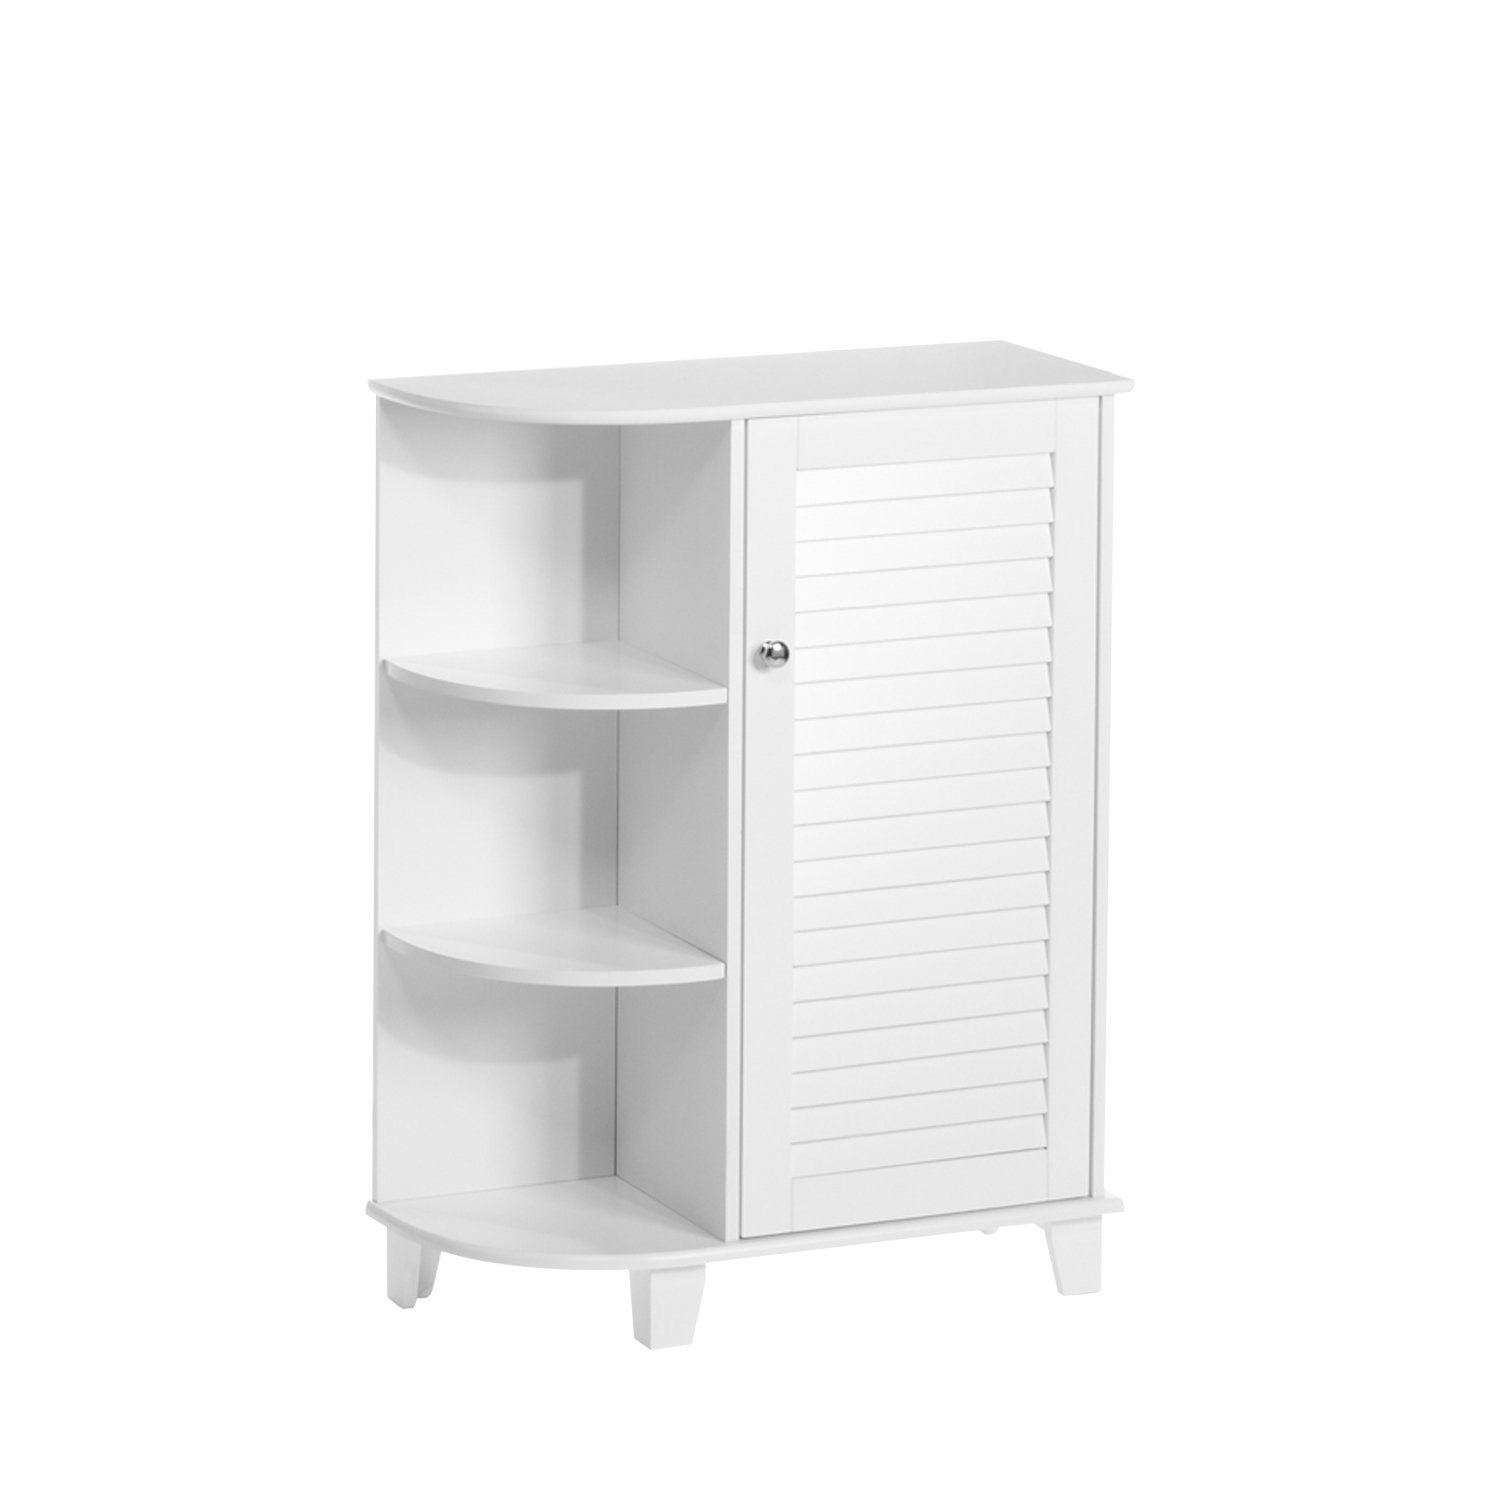 amazoncom riverridge home ellsworth floor cabinet with side shelves white kitchen u0026 dining